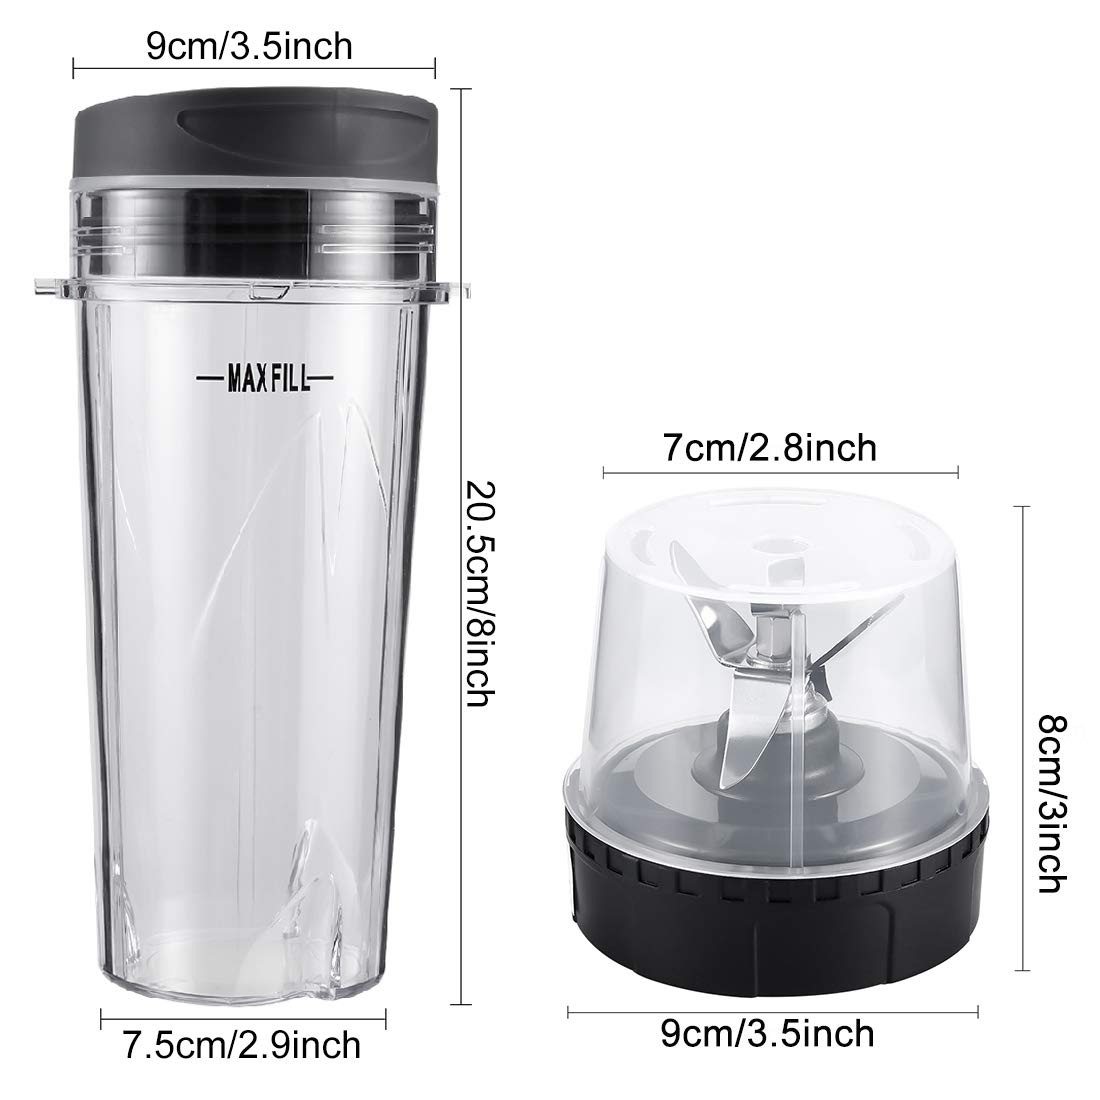 Blender Blade Assembly and 2 Pack Single Serve 16-Ounce Cup Set for BL770 BL780 BL660 Professional Blender TOOLACC Replacement Parts for Nutri Ninja